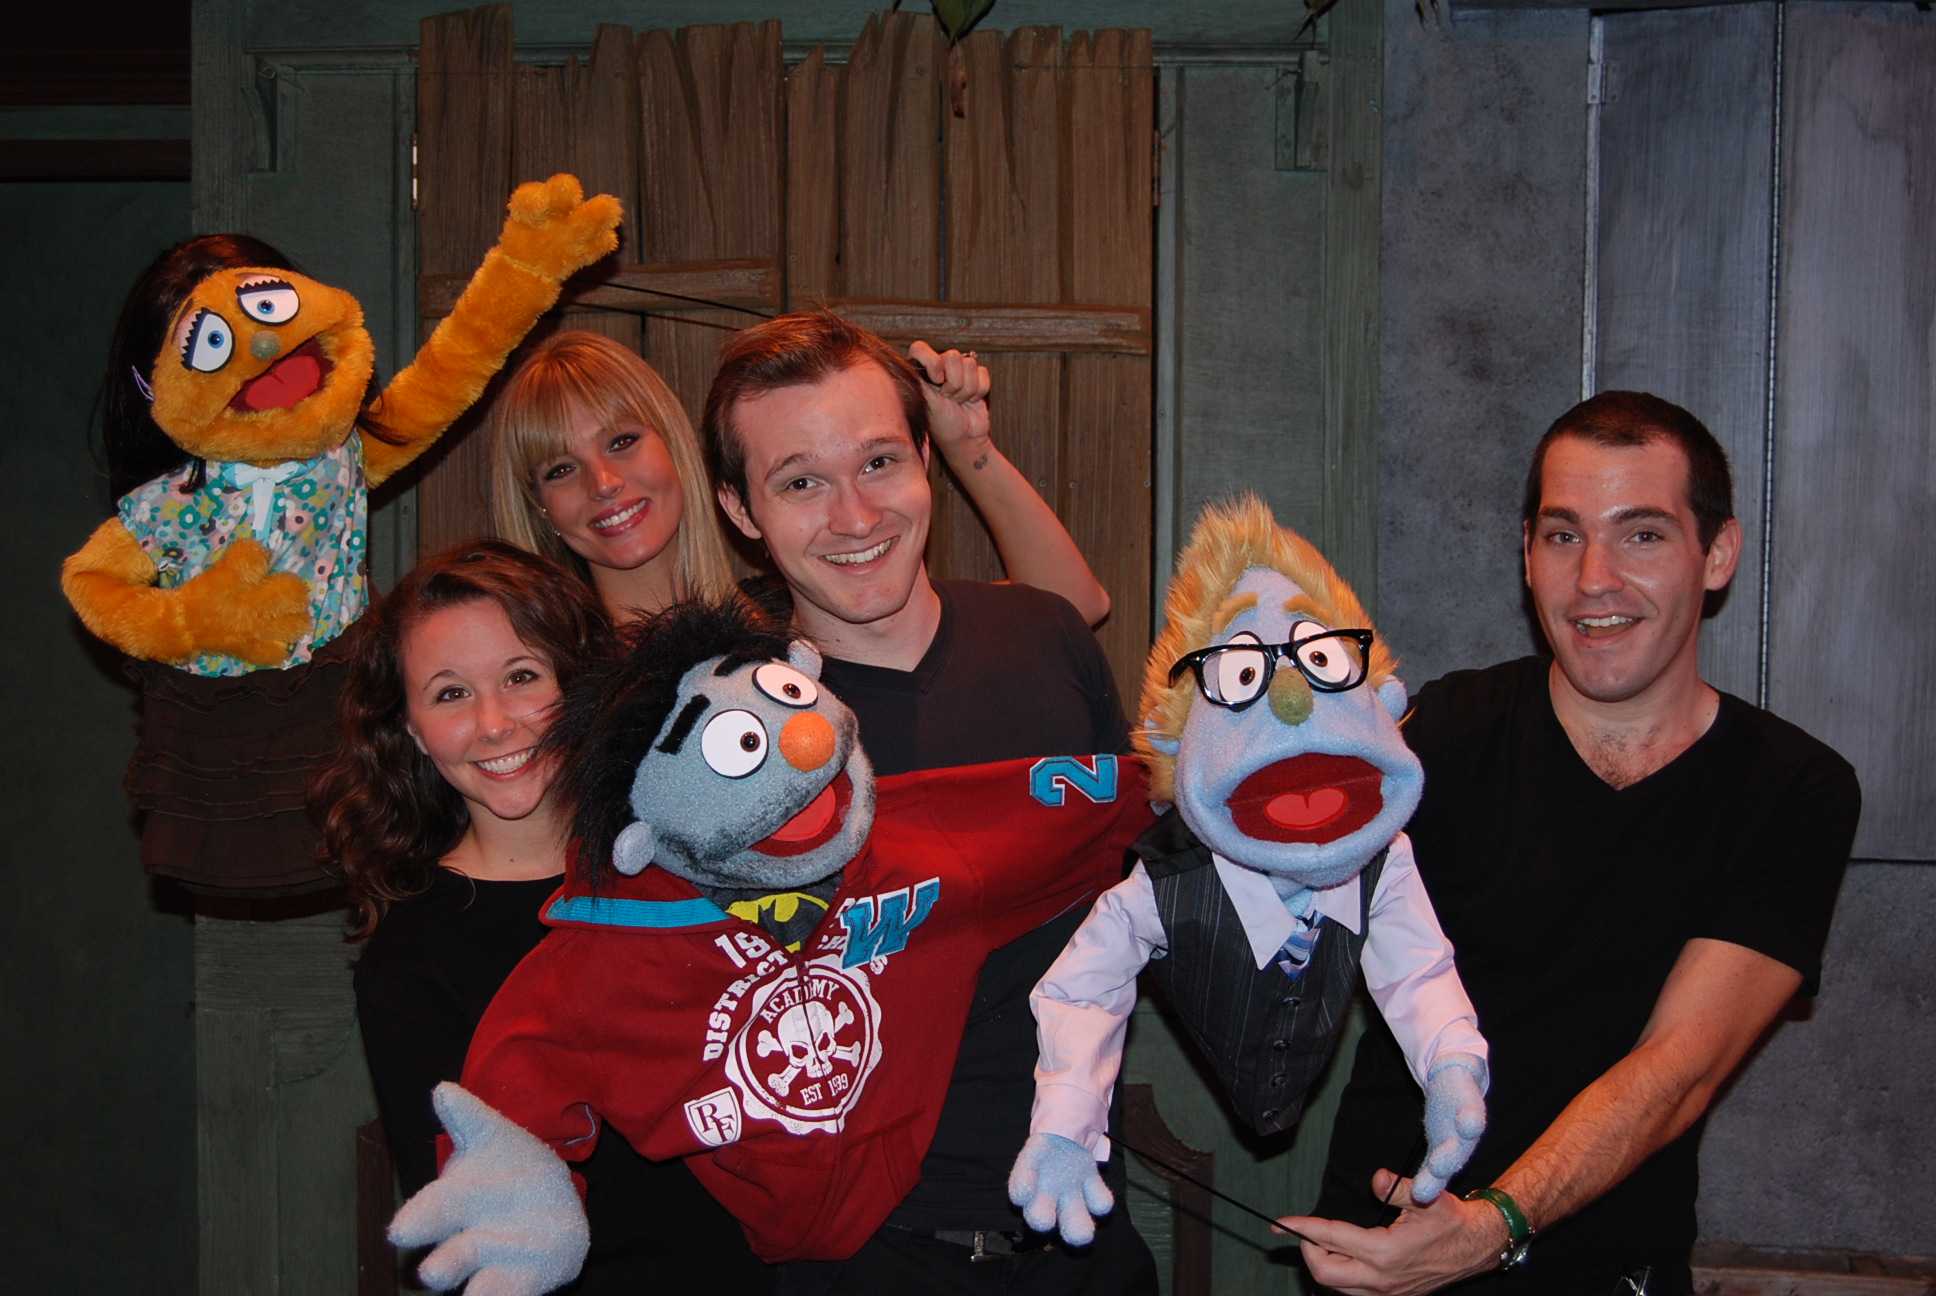 Courtney Poston, Nicole Piro, Christian Vandepas, Mike Westrich, Kate Monster, Nicky & Rod in Slow Burn Theatre's Avenue Q / Photo by Matthew Korinko